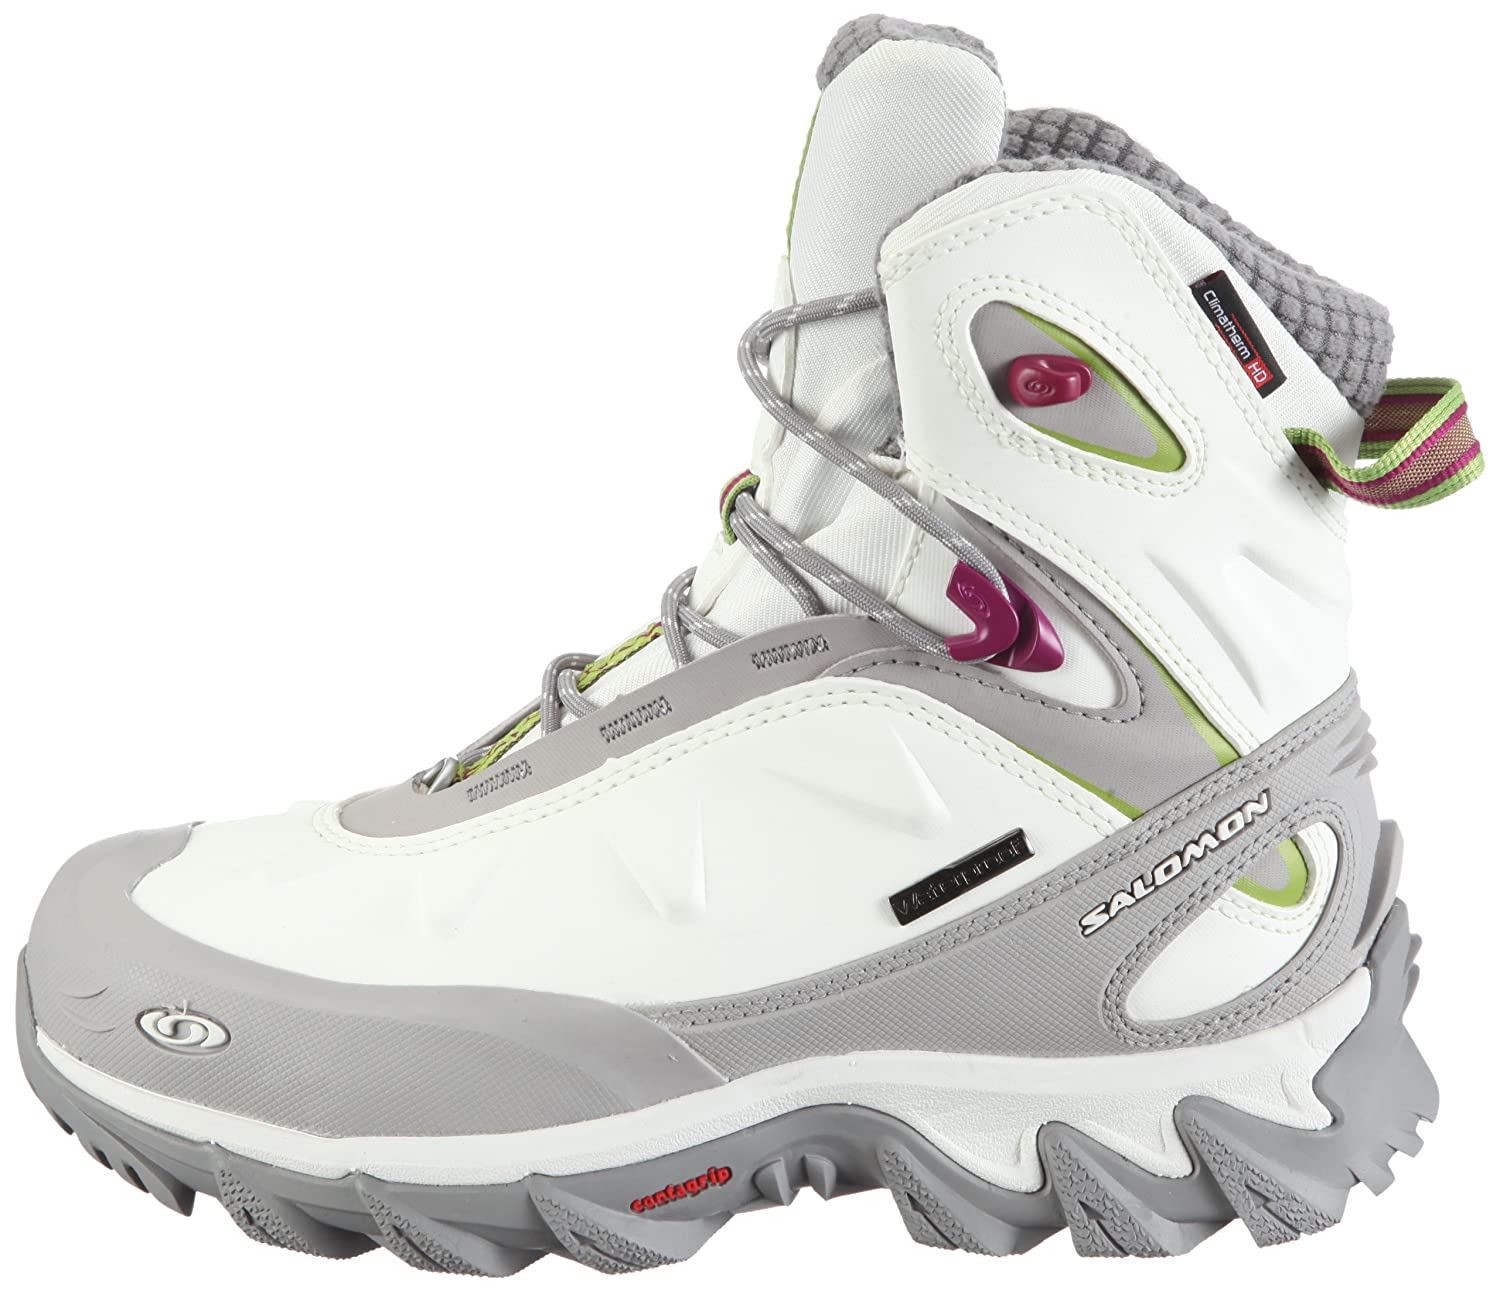 Salomon Women s Mischaka WP Sports and Outdoor Shoes White Size  3.5   Amazon.co.uk  Shoes   Bags 98245b21fc7